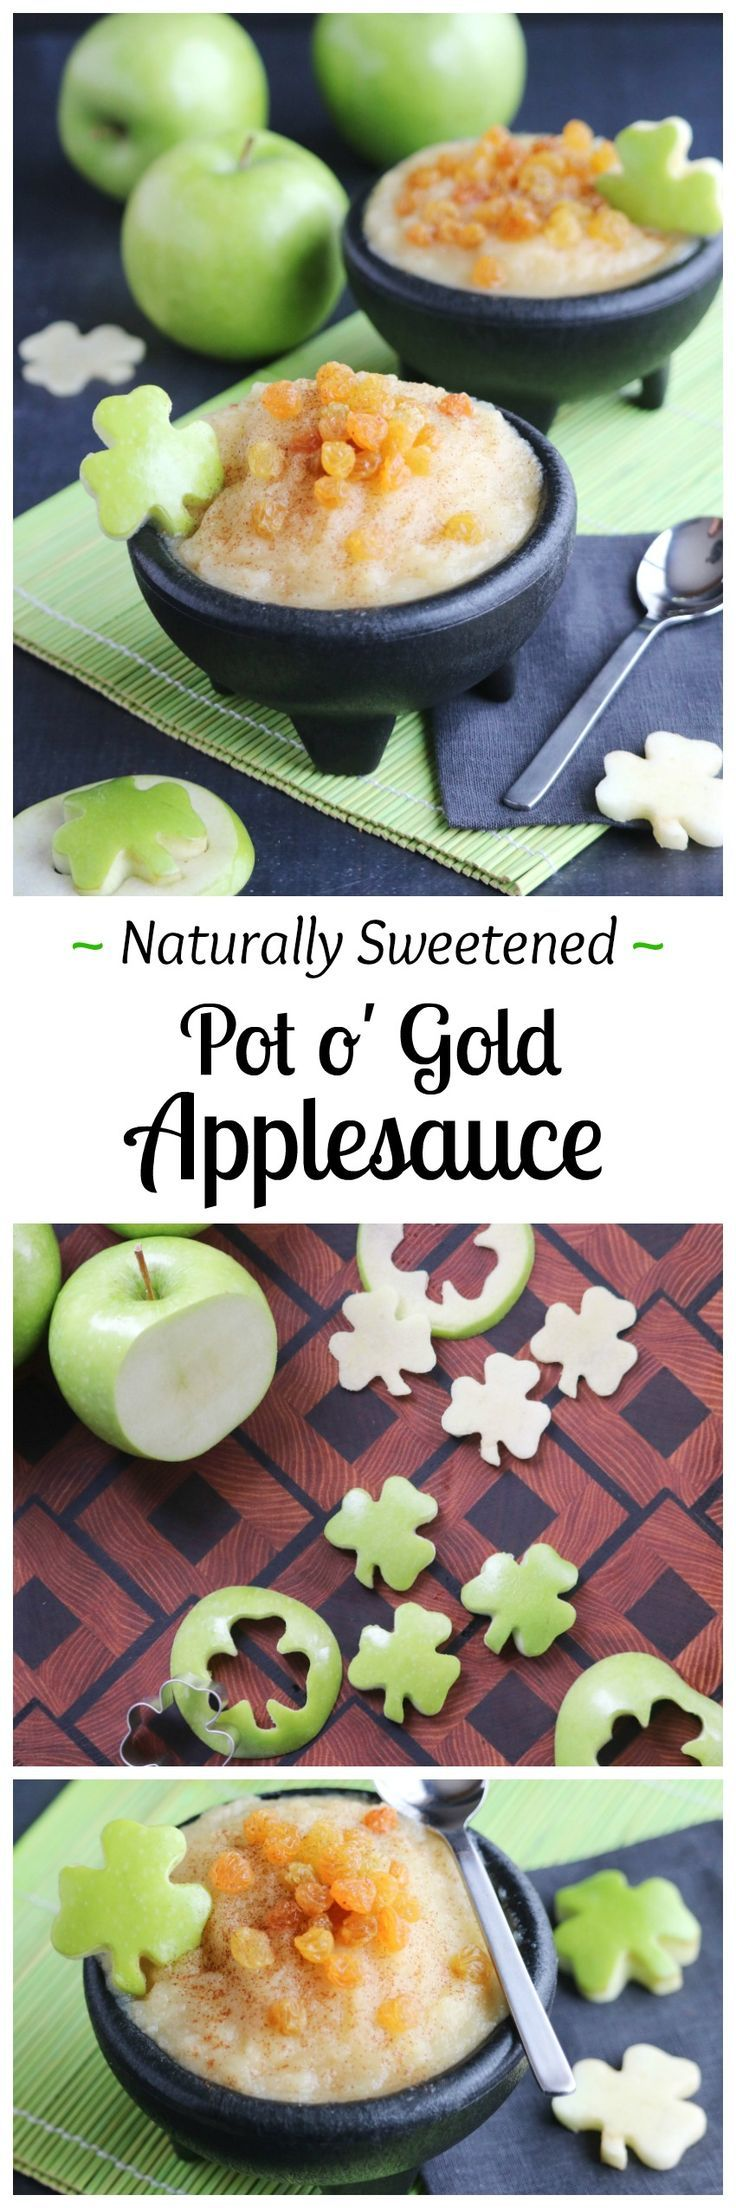 This Naturally Sweetened Pot o' Gold Applesauce is such a fun St. Patrick's Day snack! Quick, easy – and so healthy, too! With natural sweetness from a surprising (golden!) mix-in, your kids will love the luck-o-the-Irish twist, and you'll love all the great nutrition! | www.TwoHealthyKitchens.com